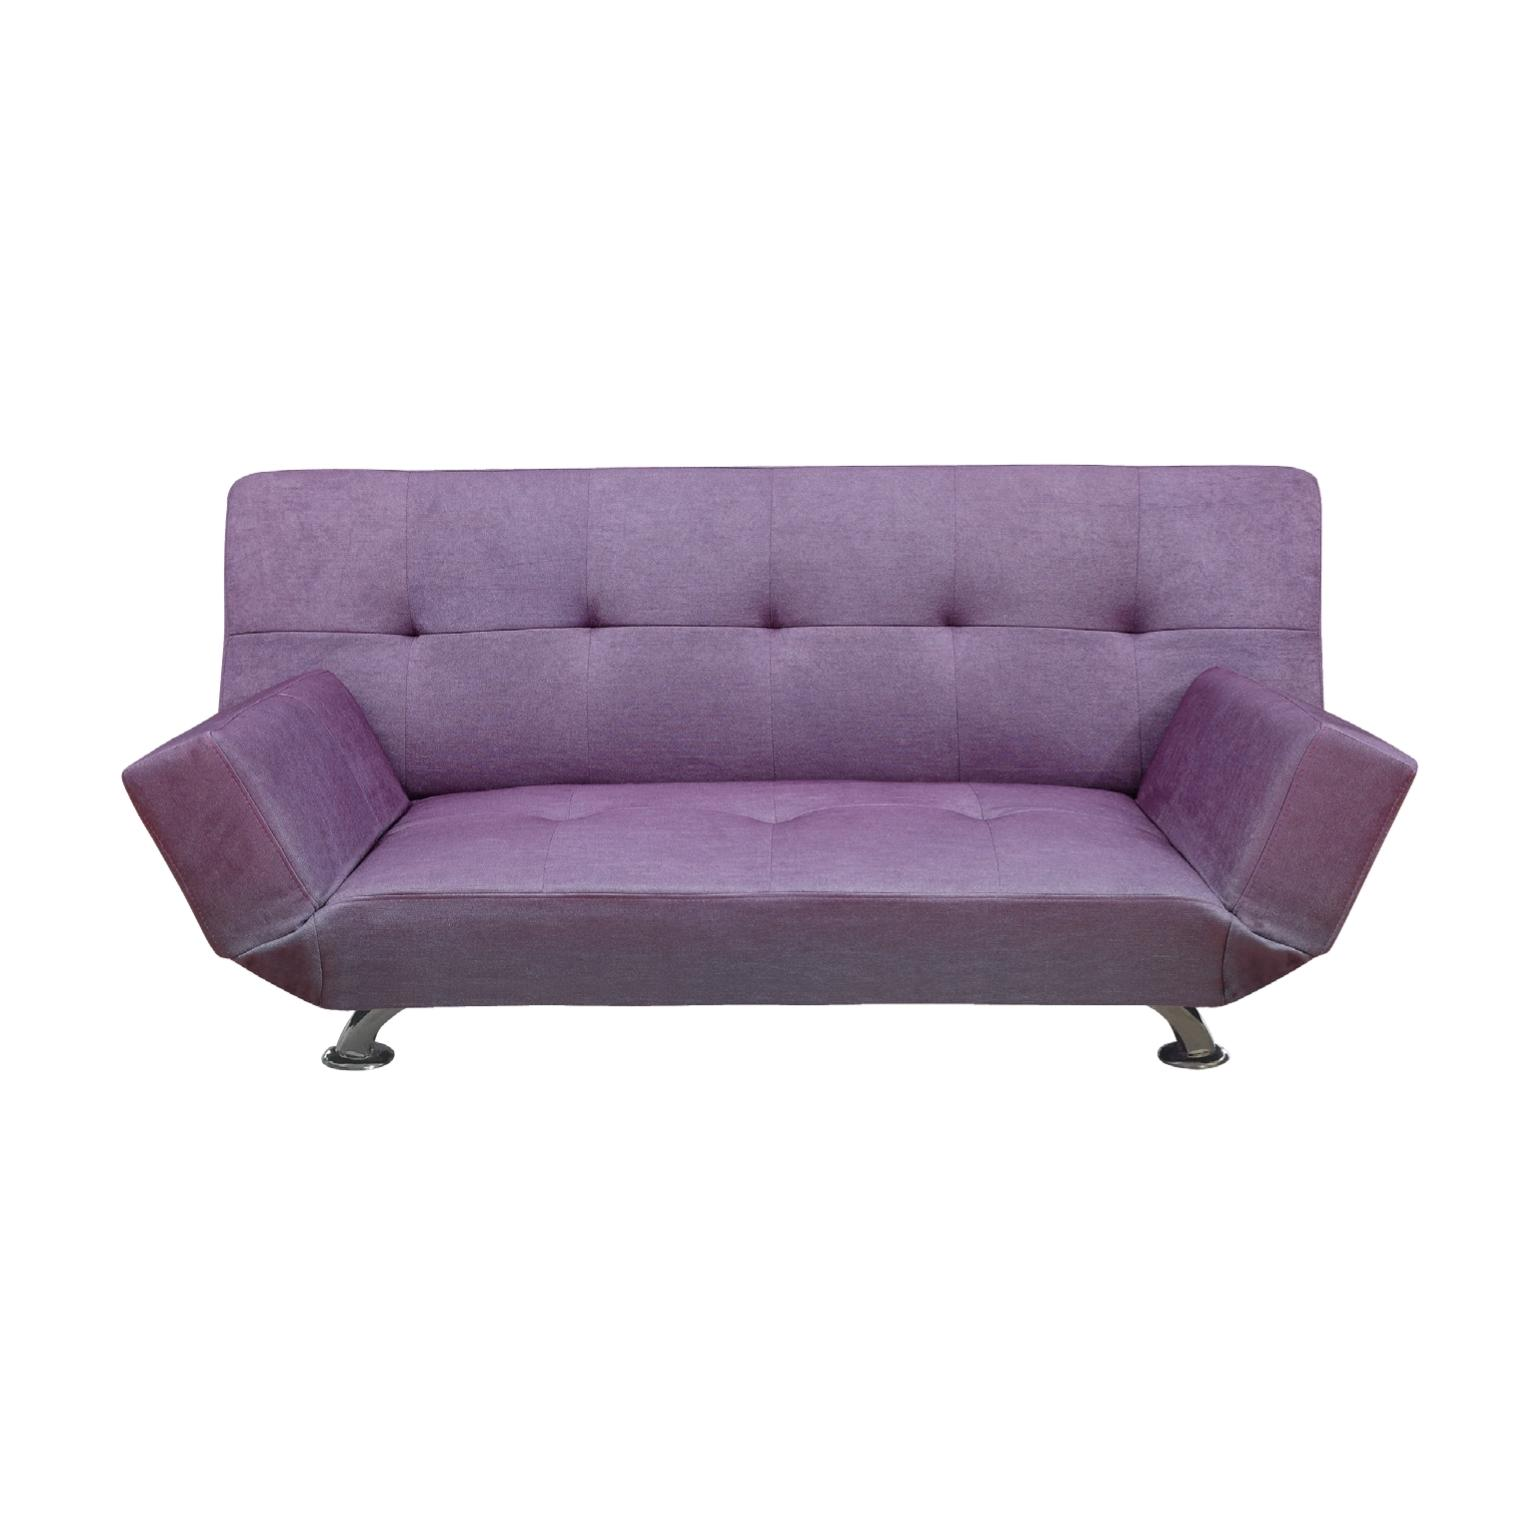 Purple sleeper sofa purple fabric sofa sleeper mb 11 for Purple sofa